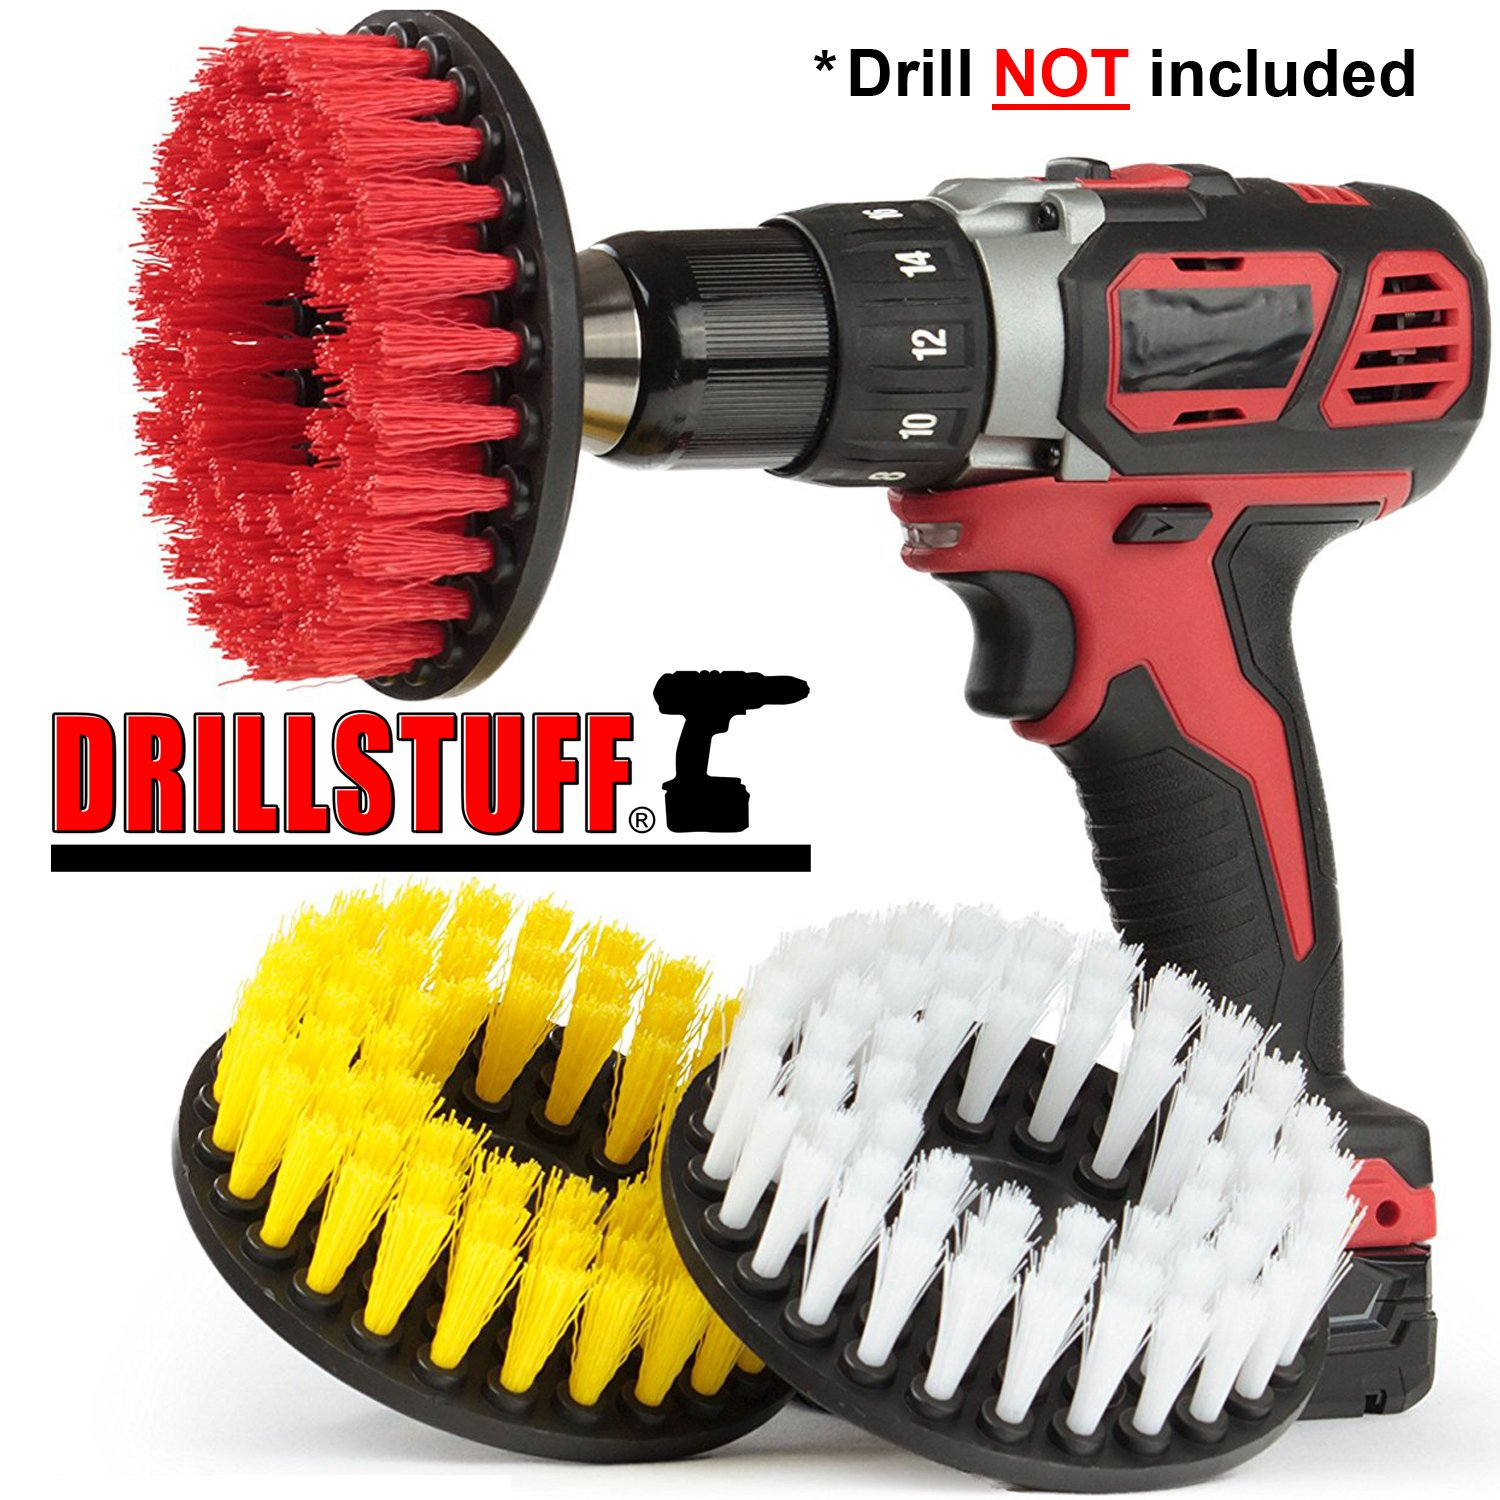 Tile and Grout, Tub, Shower, Sink, Porcelain Drill Powered Cleaning Rotary Electric Brush Kit by Drillstuff